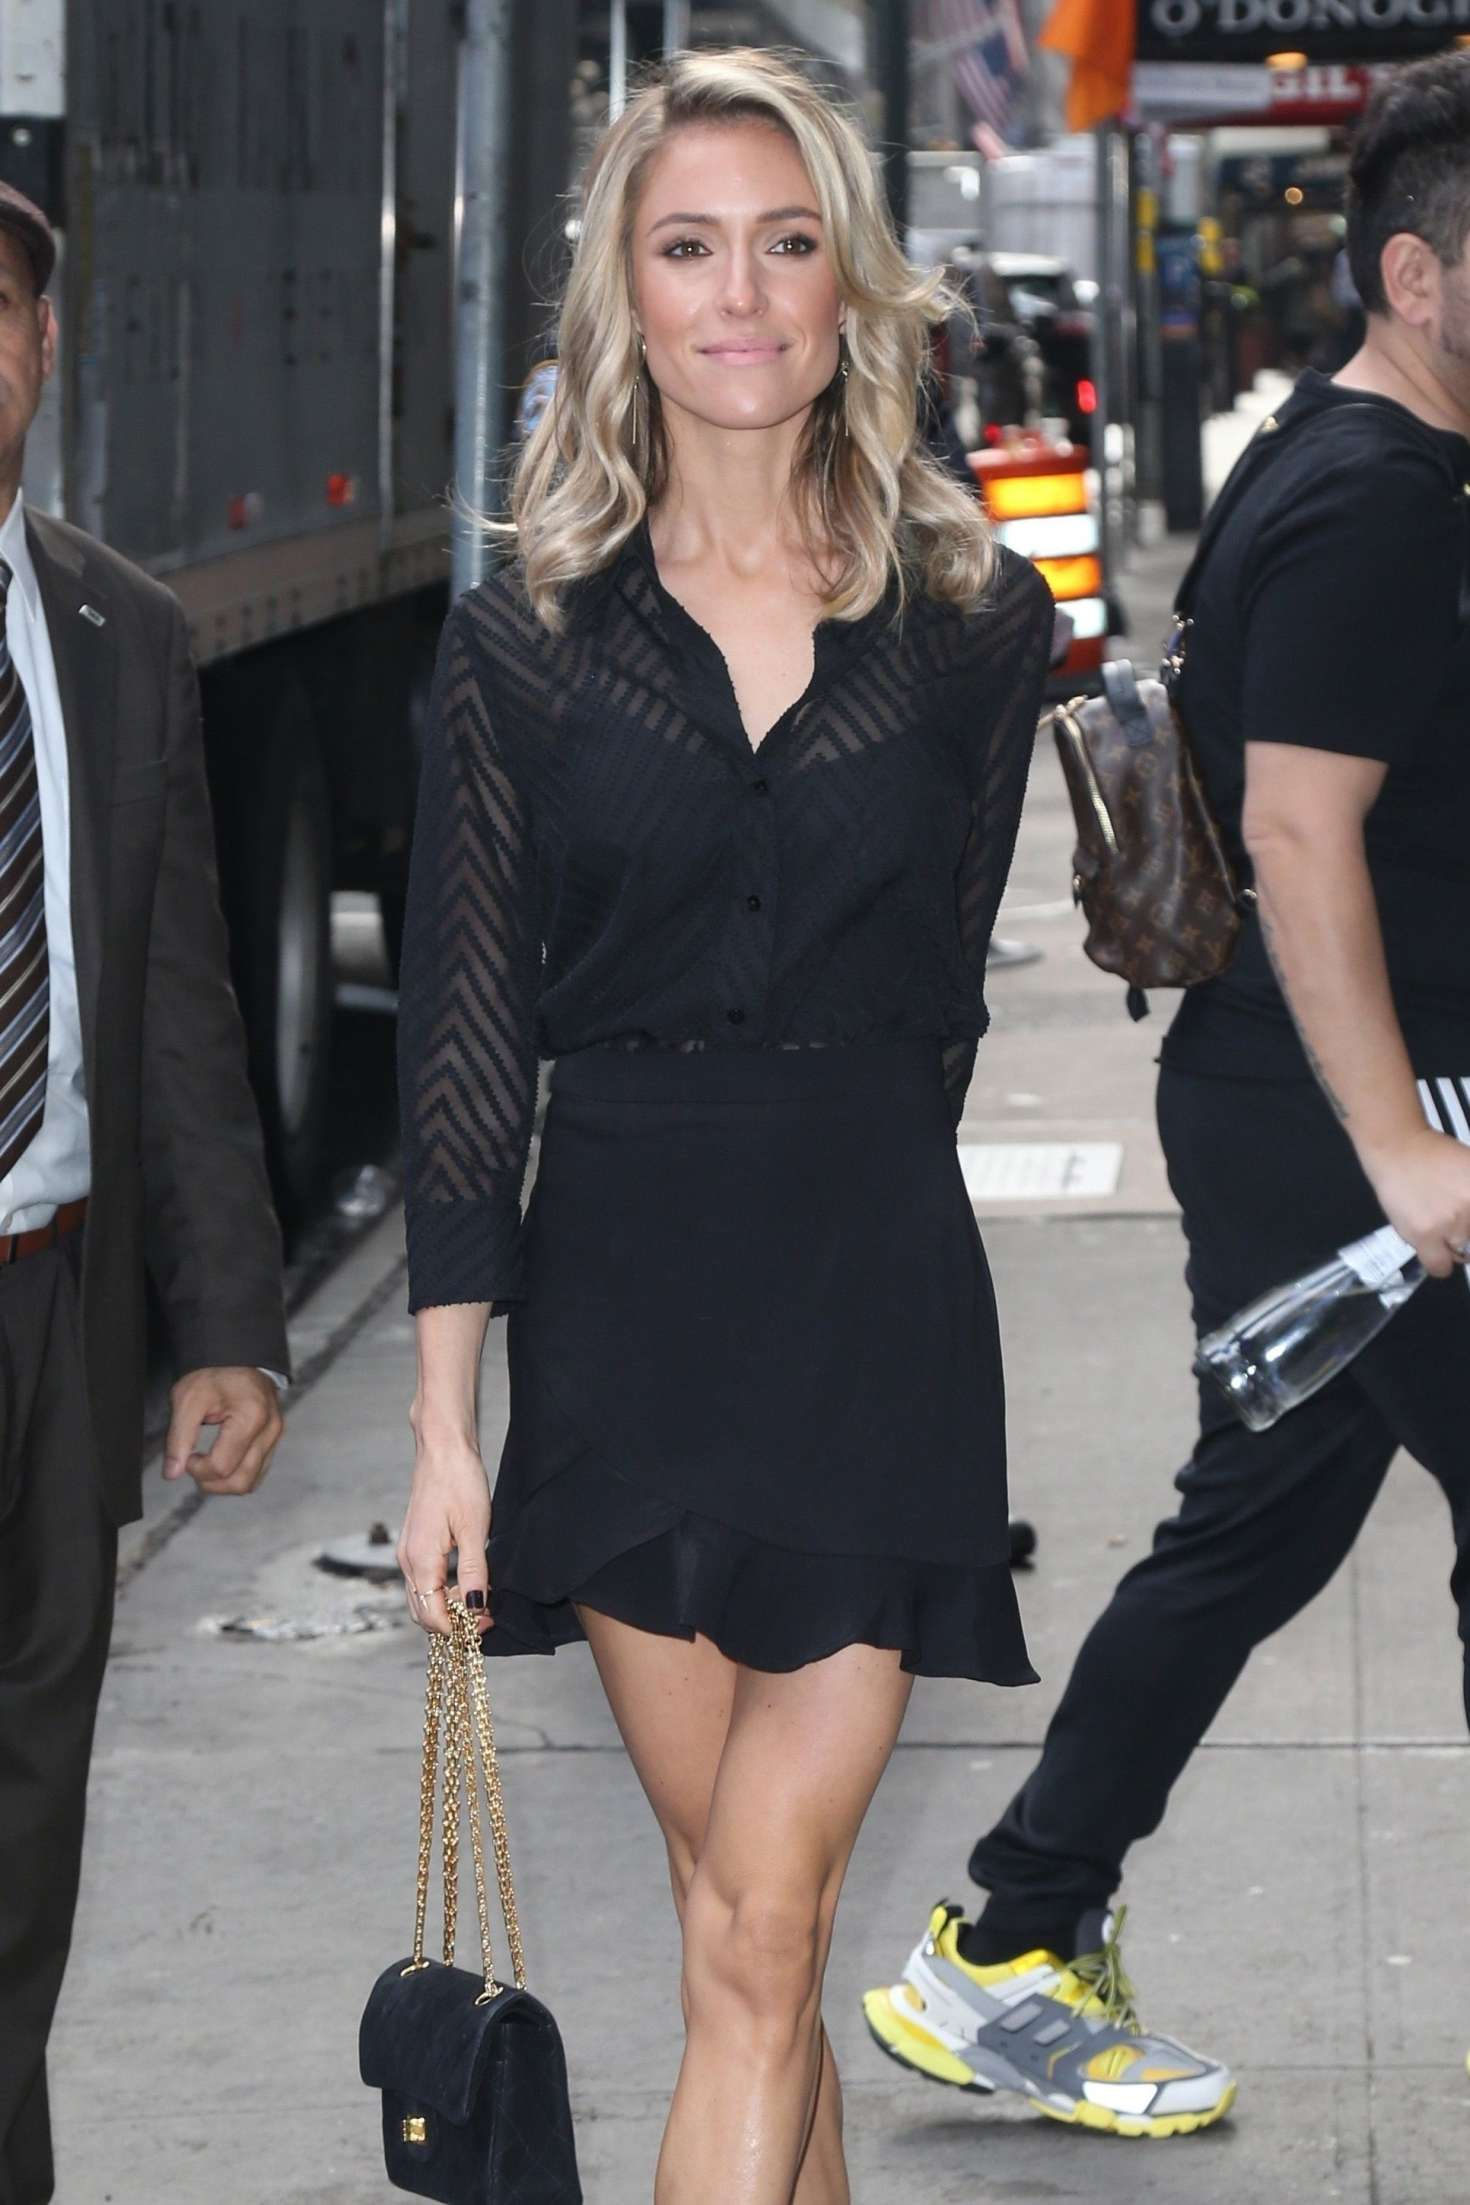 Kristin Cavallari 2019 : Kristin Cavallari: Heads to Good Morning America -03